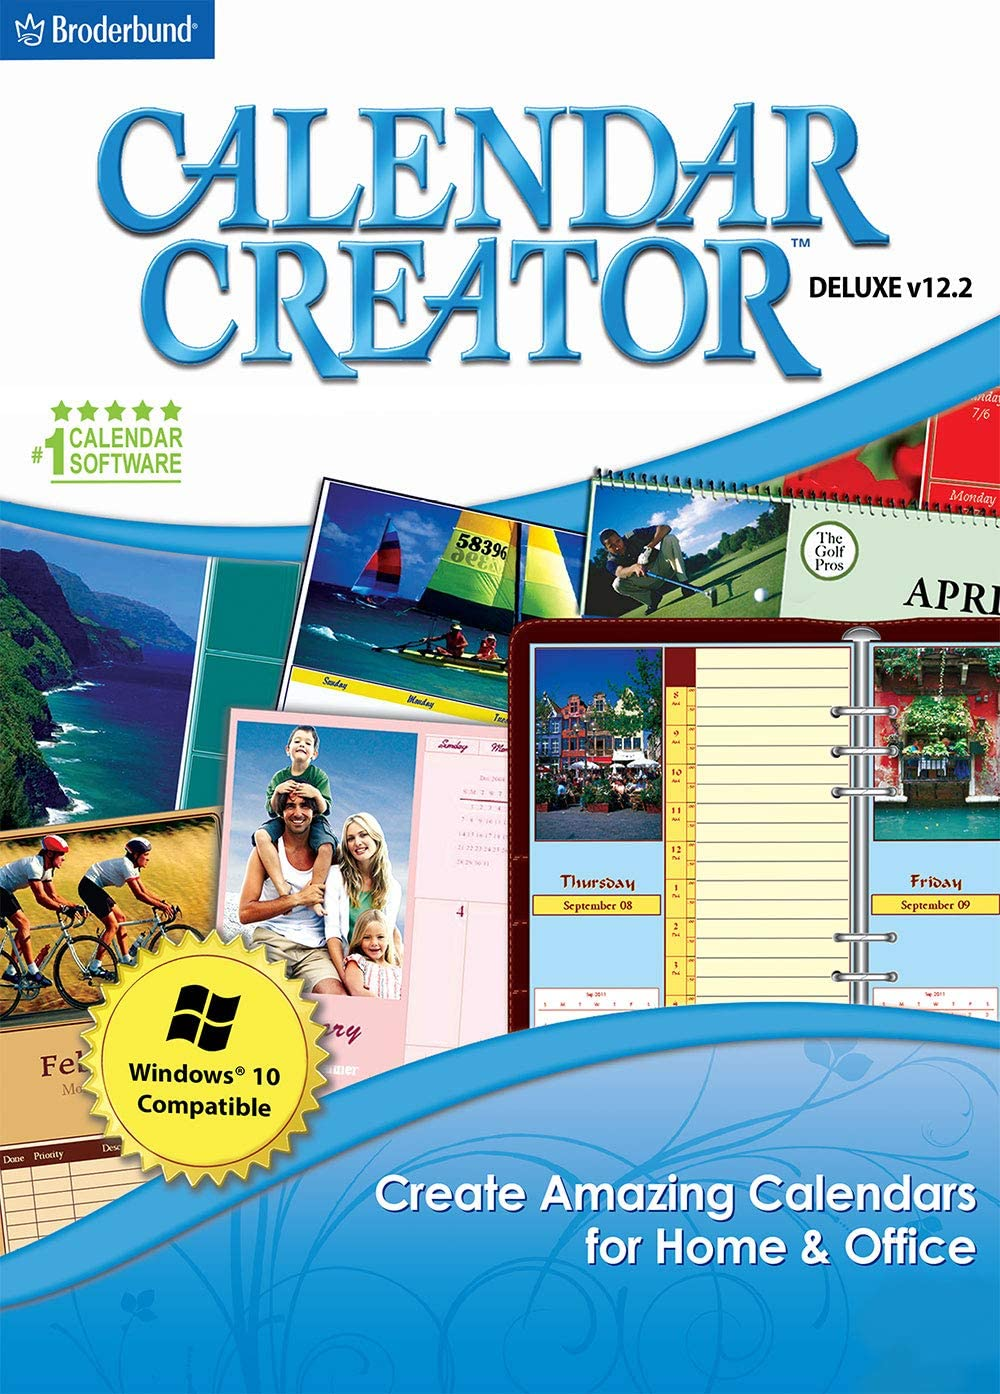 Calendar Creator Deluxe v12.2 [PC Download] 71i-03dmgSL